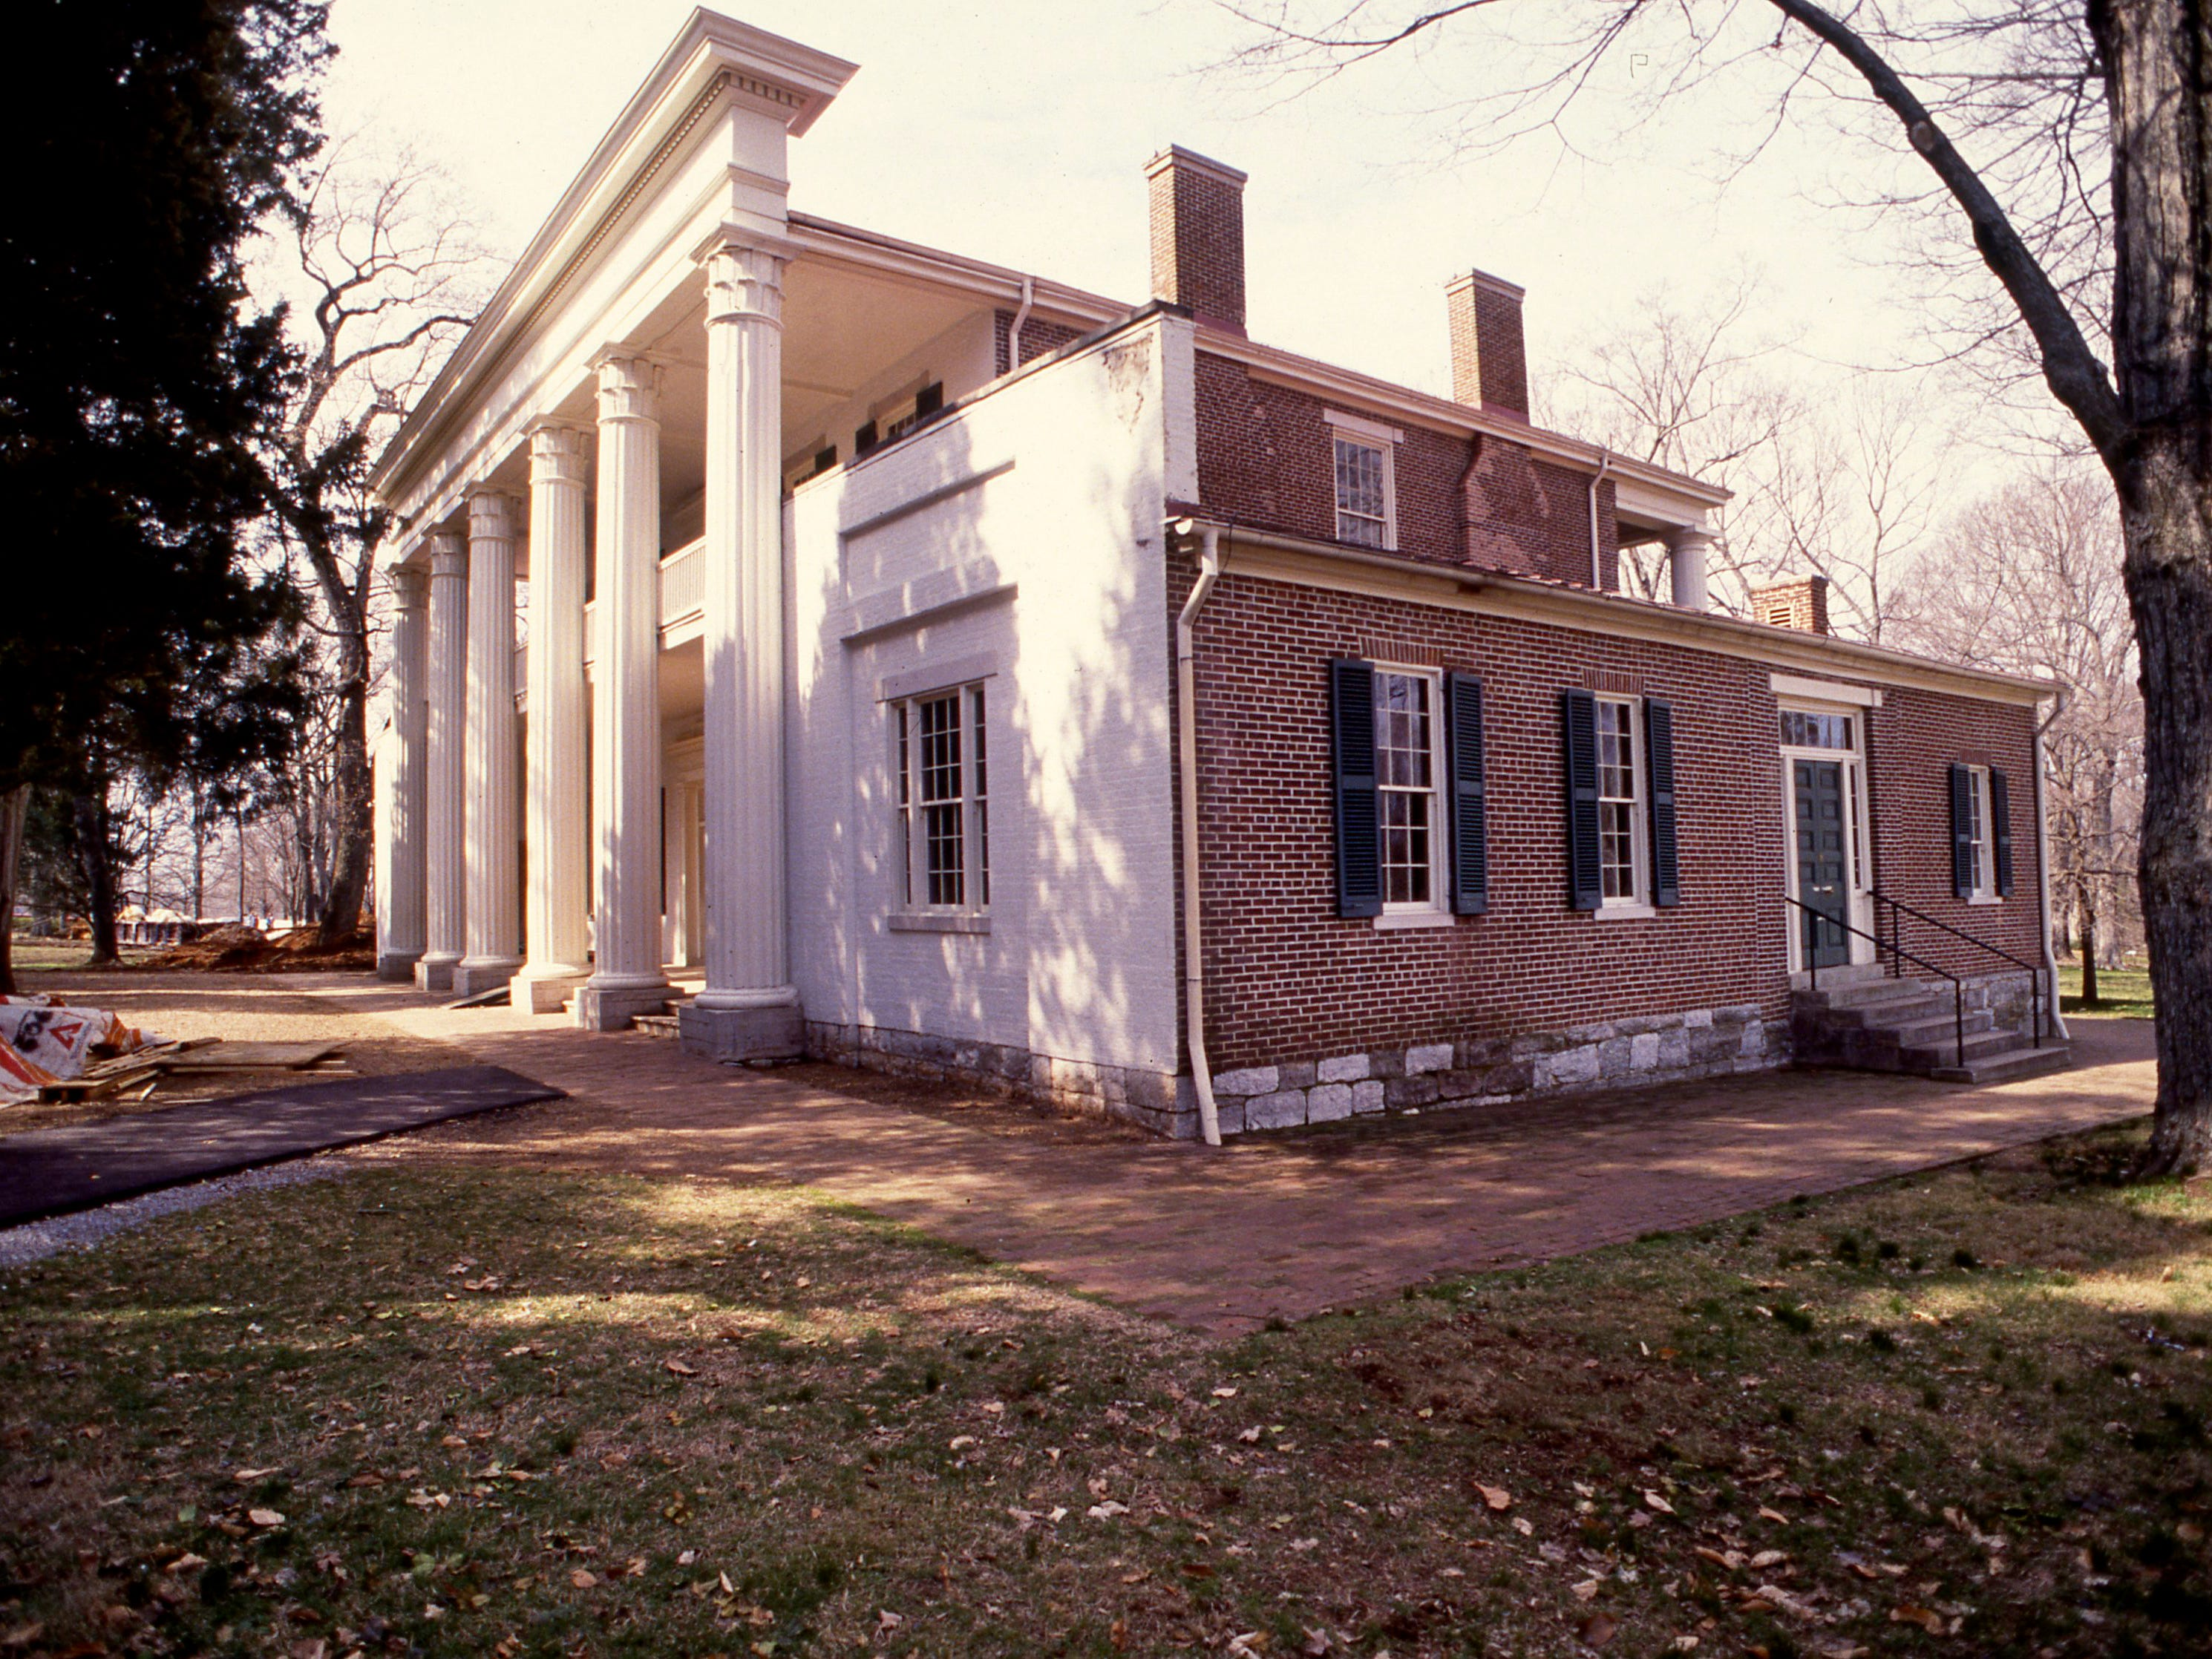 The Hermitage, here Feb. 26, 1989, will reopen April 1 after being closed for extensive renovations. The Greek Revival-style mansion was the beloved home of Andrew Jackson. The grand opening of the Andrew Jackson Center at the presidential mansion is March 18.